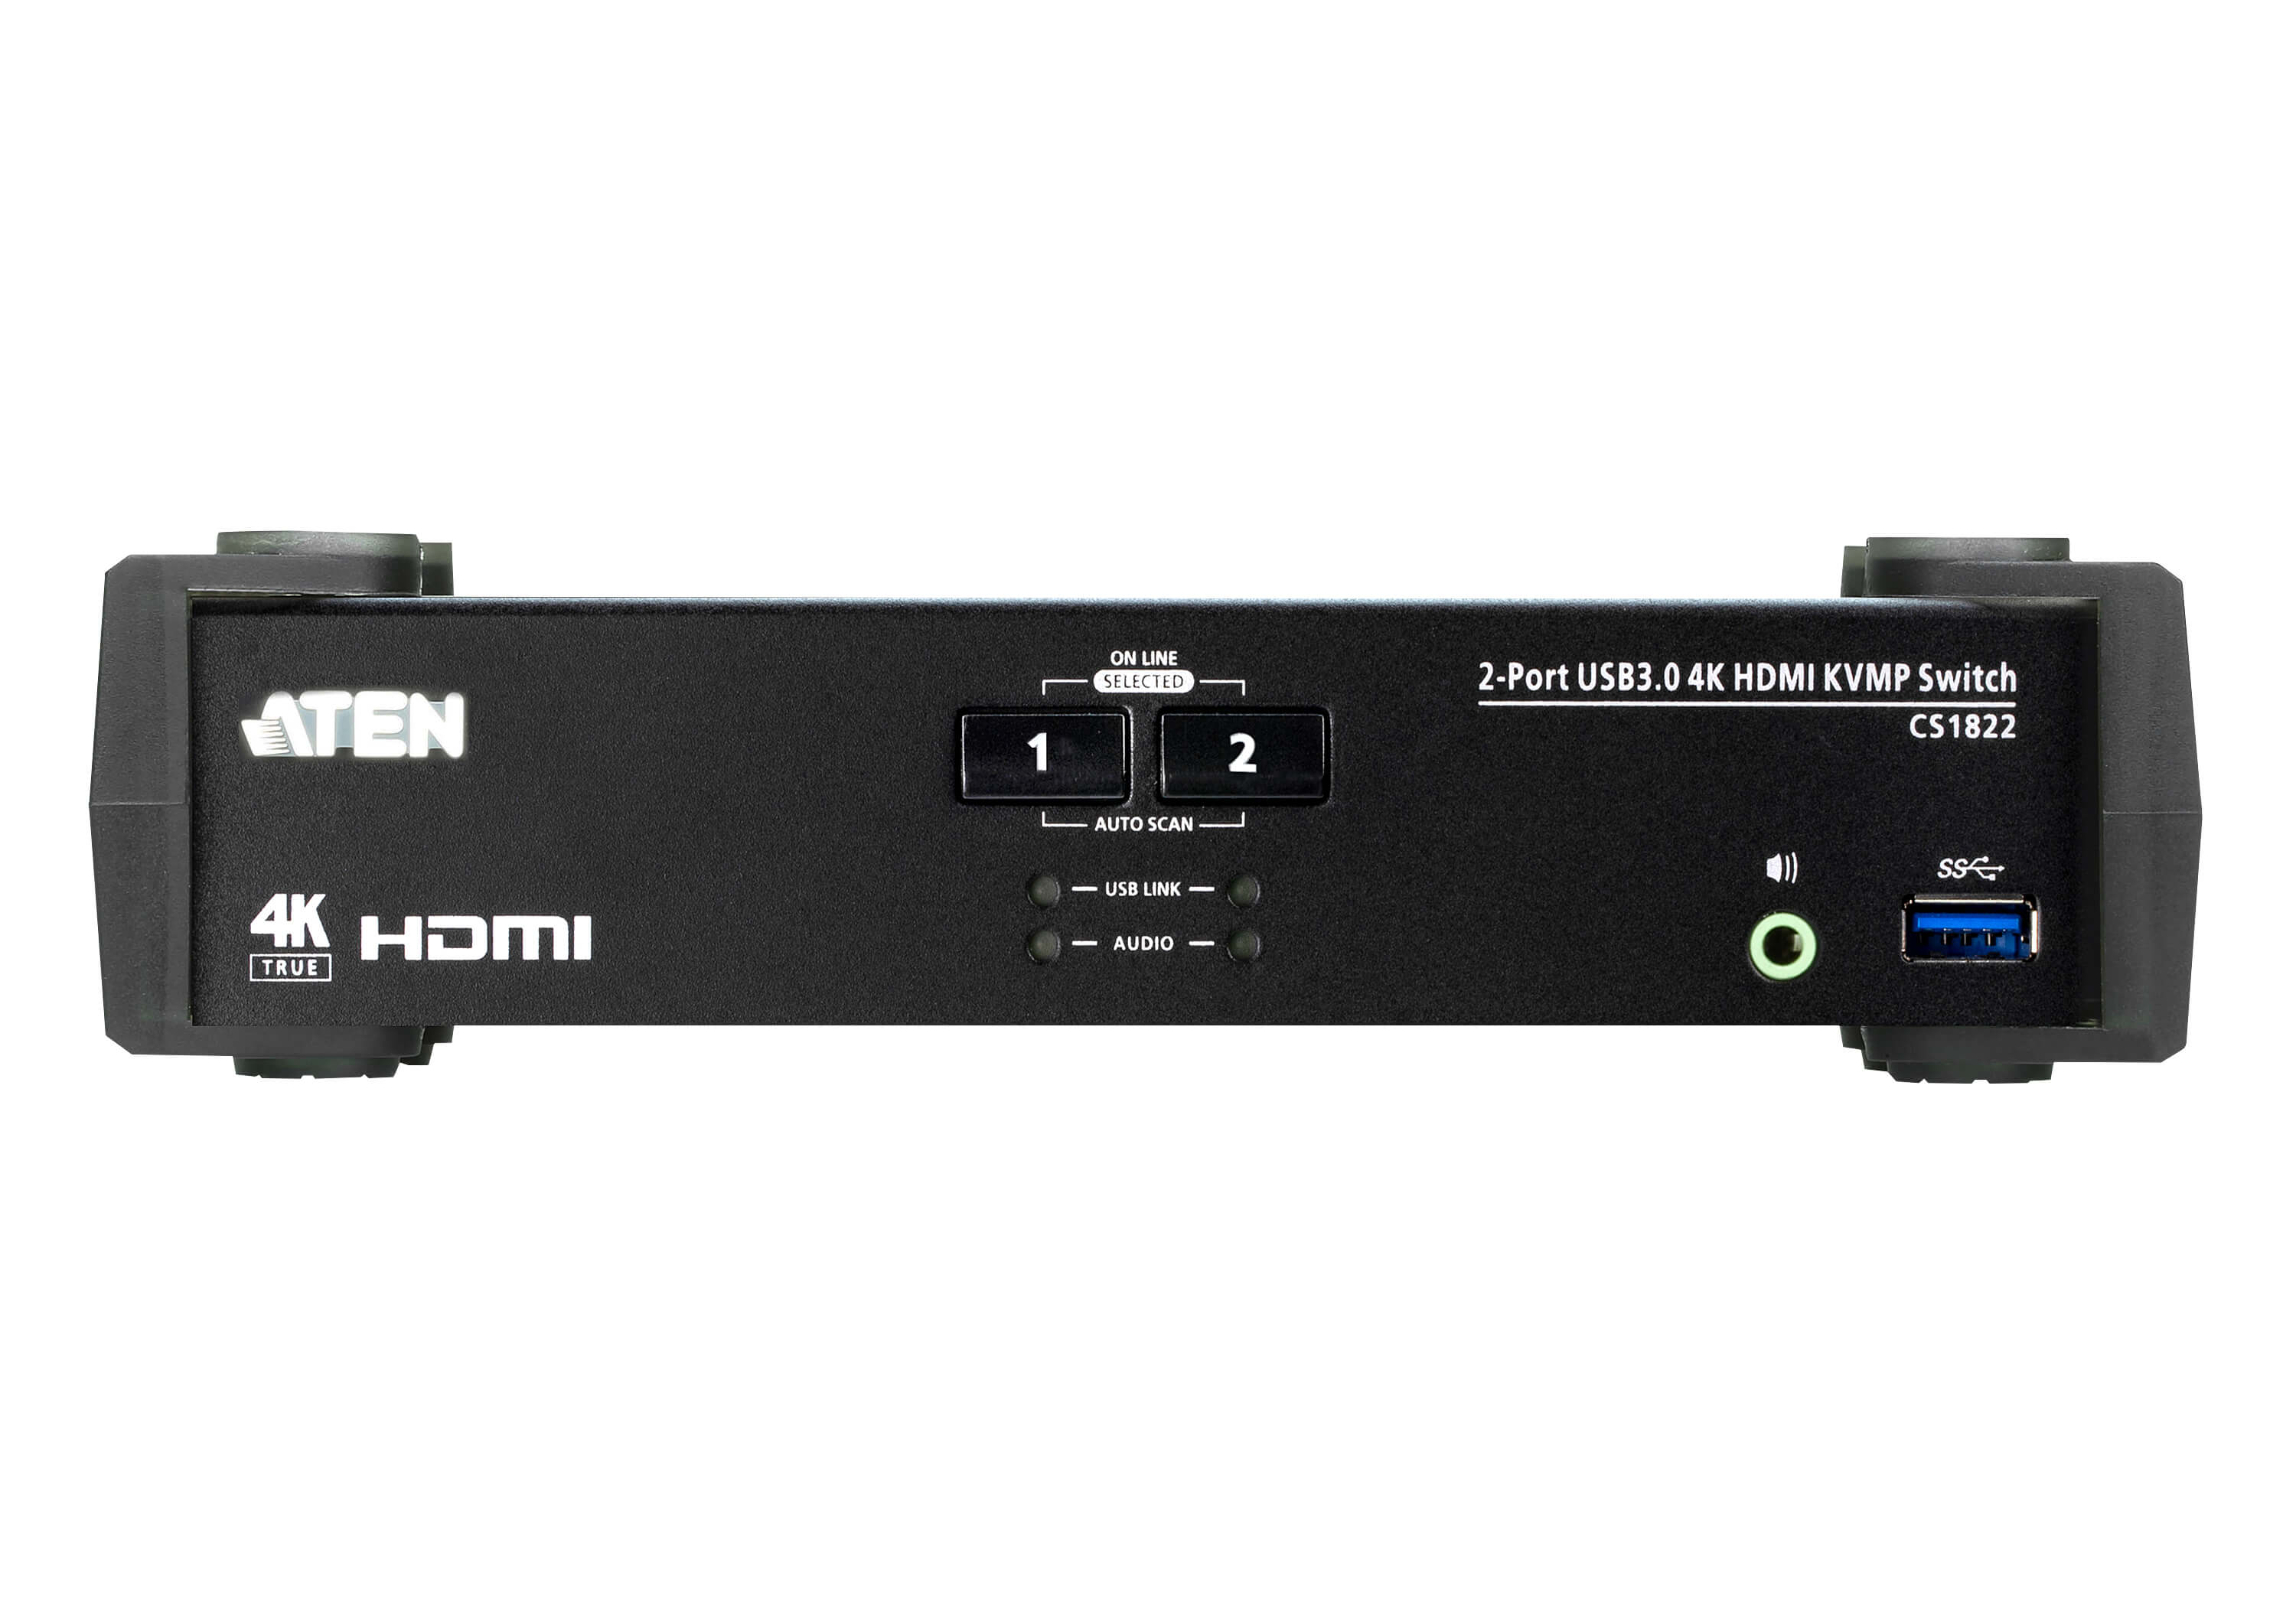 Switch USB 3.0 4K HDMI KVMP™ de 2 Portas-3